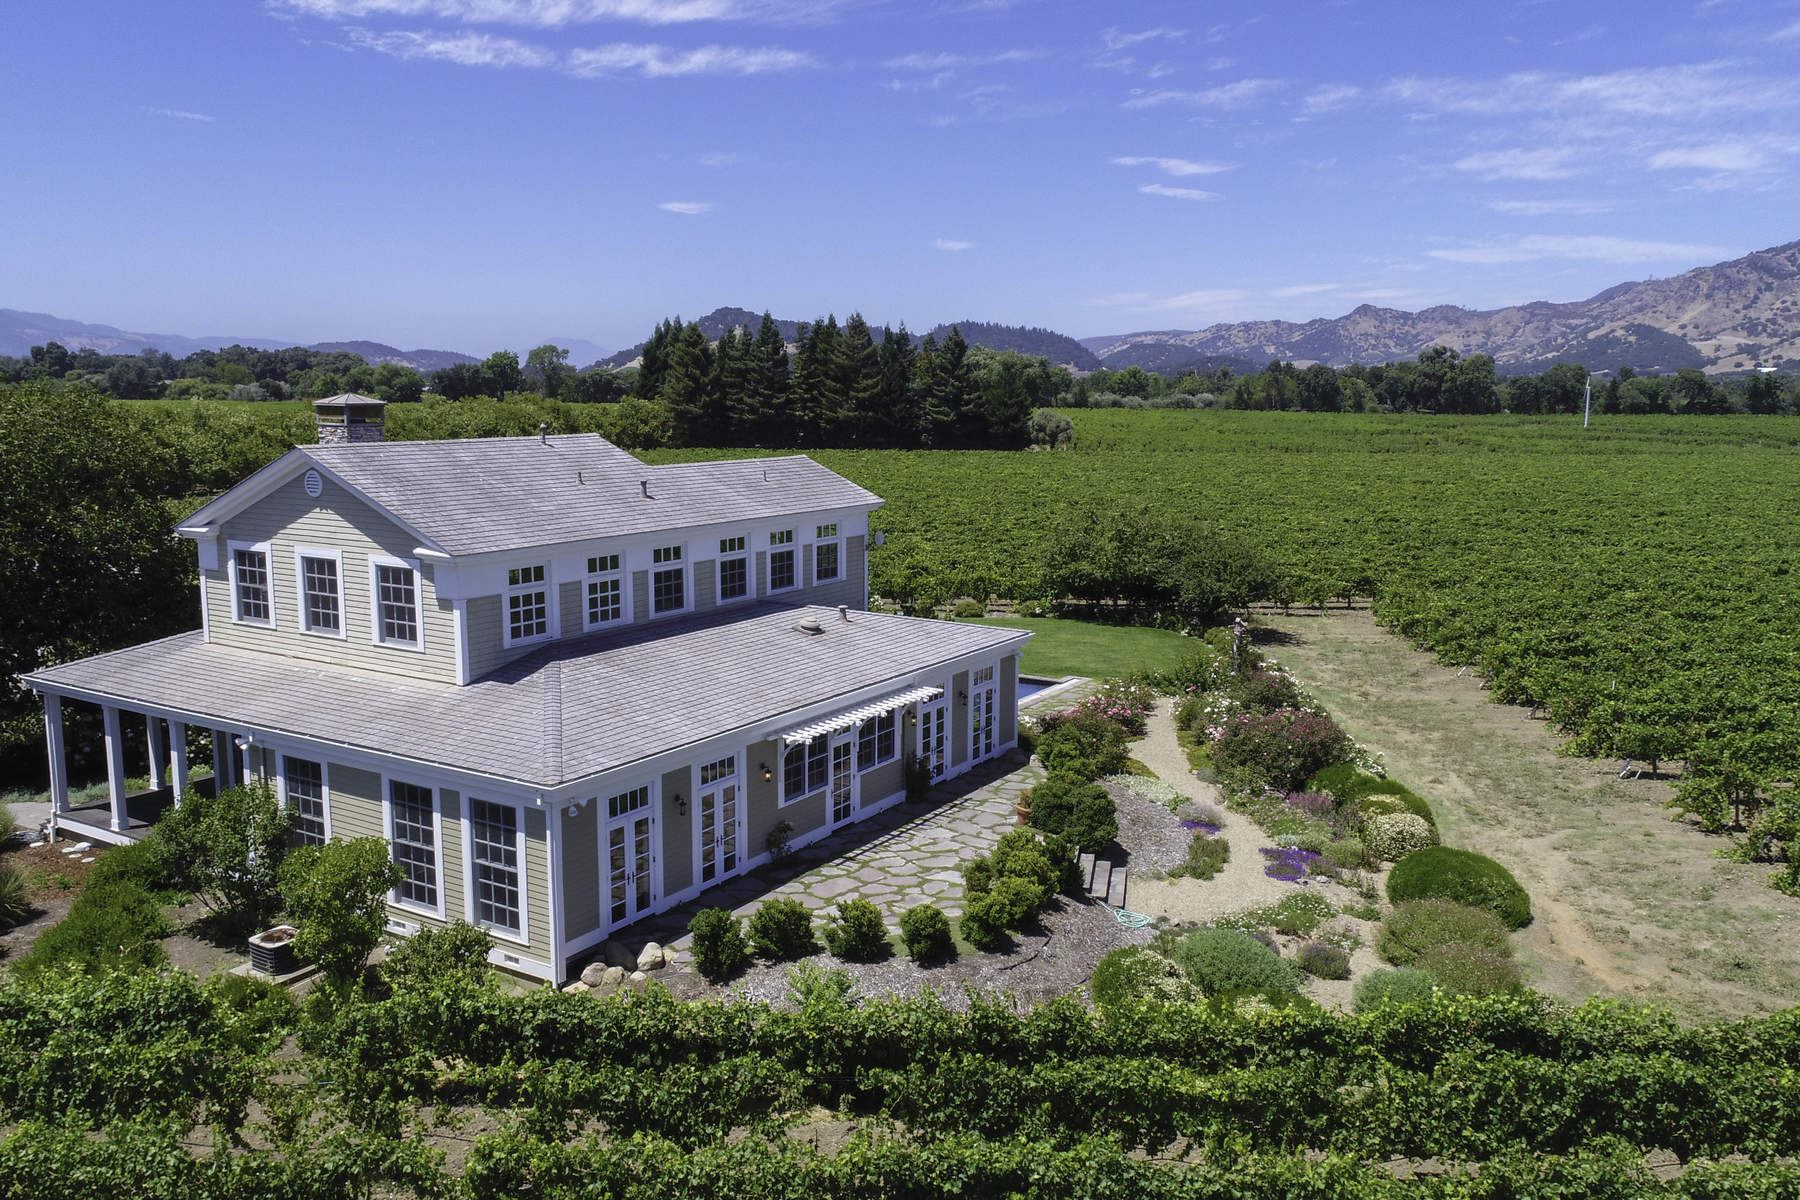 Casa Unifamiliar por un Venta en Napa Valley Vineyard Estate 5224 Big Ranch Rd Napa, California 94558 Estados Unidos